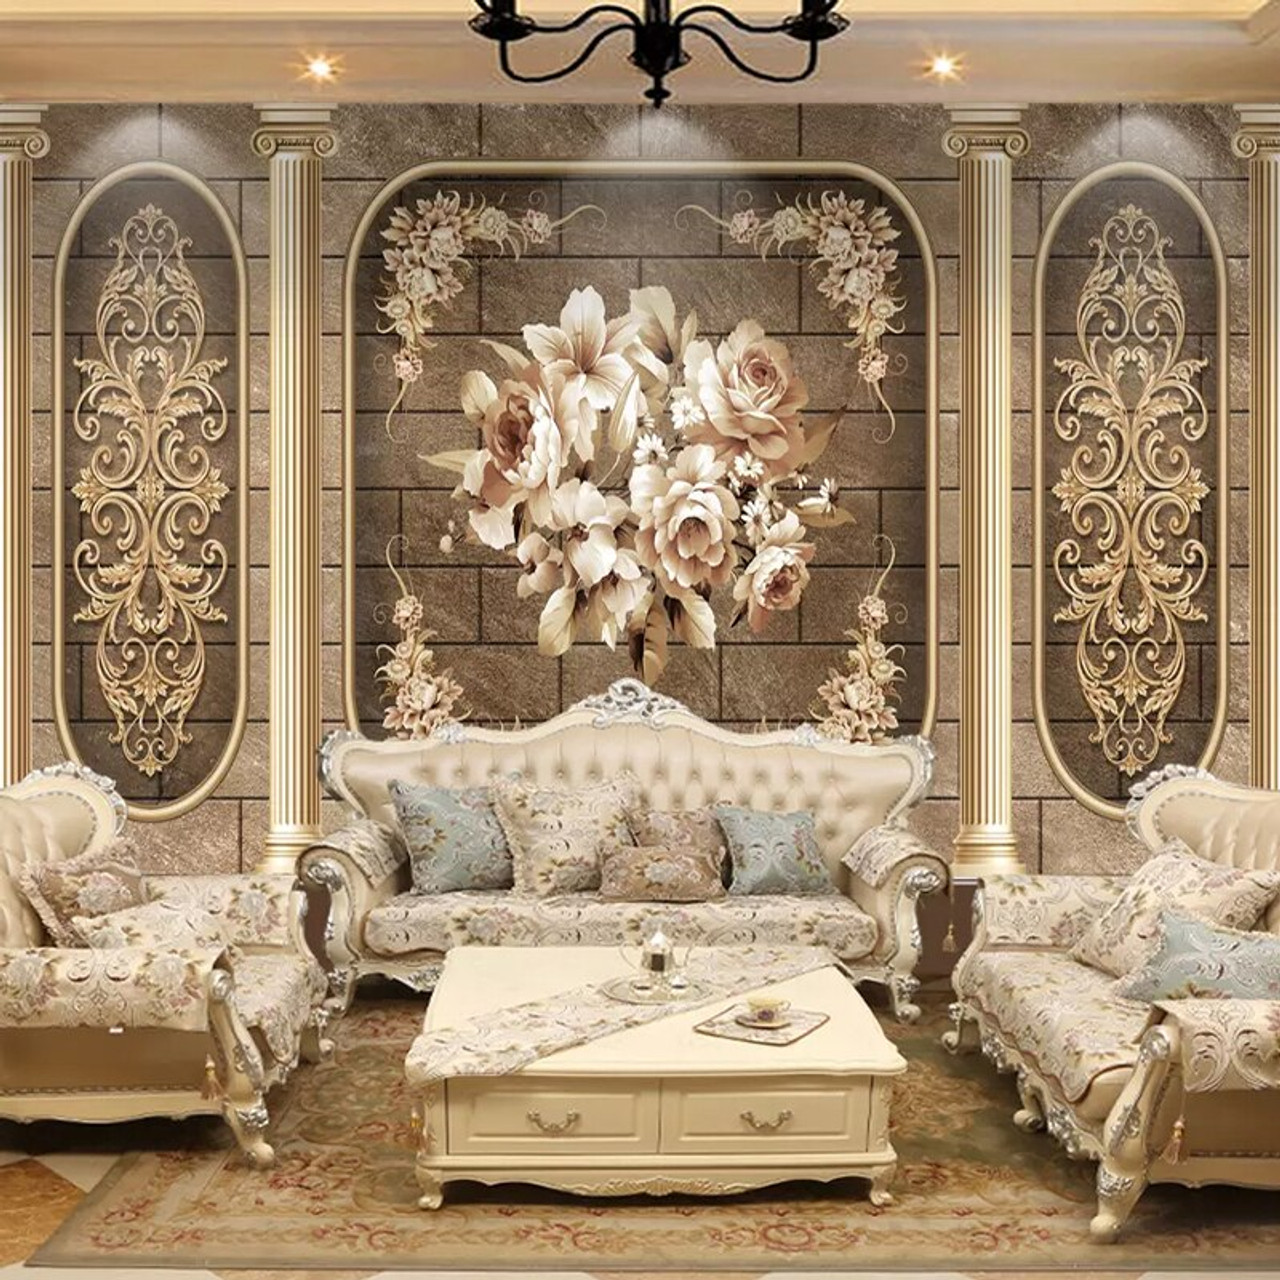 Custom Photo Wallpaper European Style Luxury Classic Flowers Mural Living  Room Bedroom Home Decor Art Wall Papers For Walls 3 D